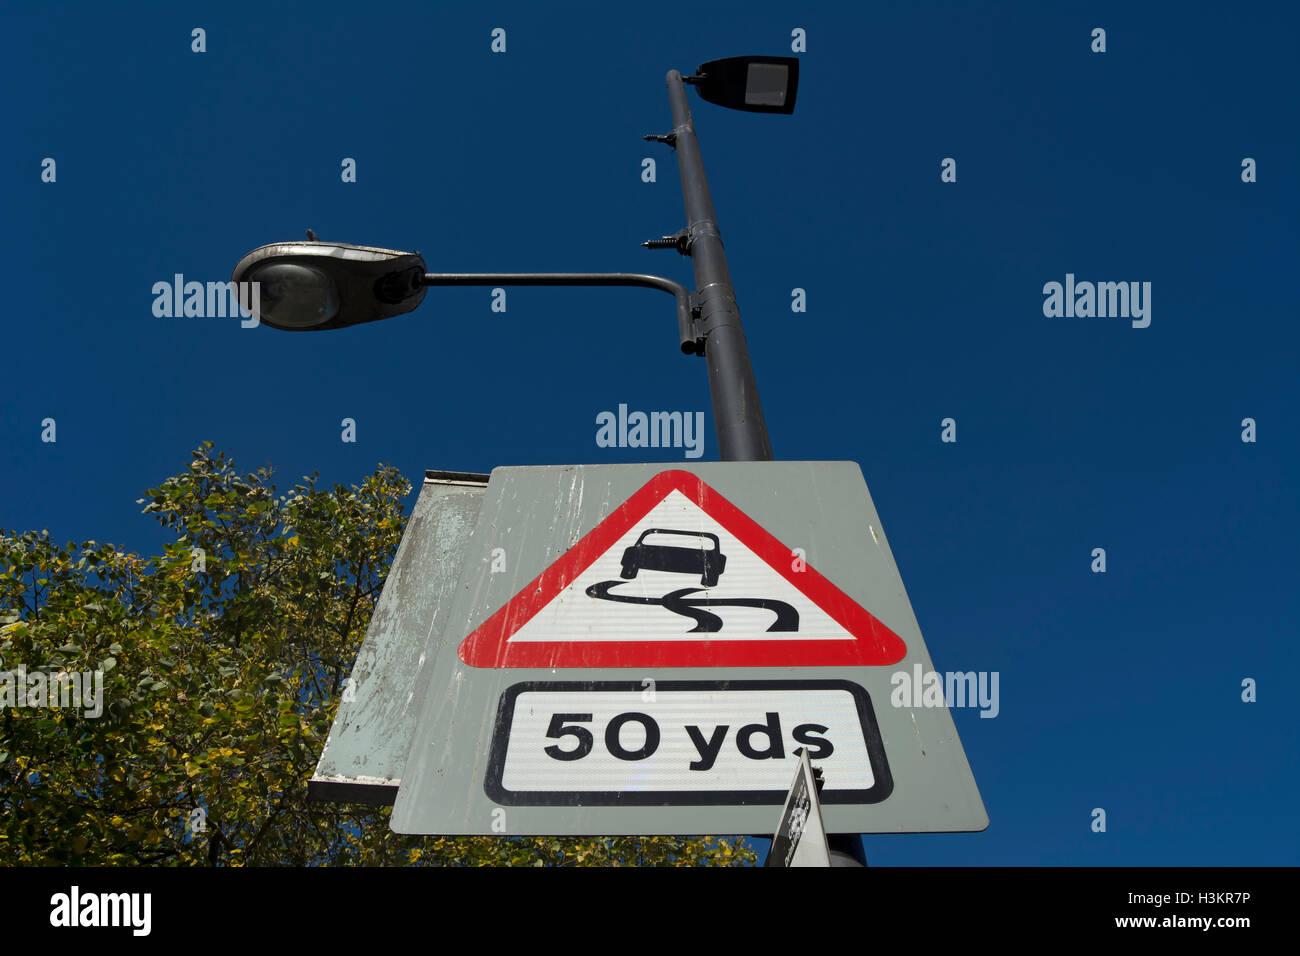 british road sign warning of a slippery road surface 50 yards ahead, in hounslow, middlesex, england Stock Photo